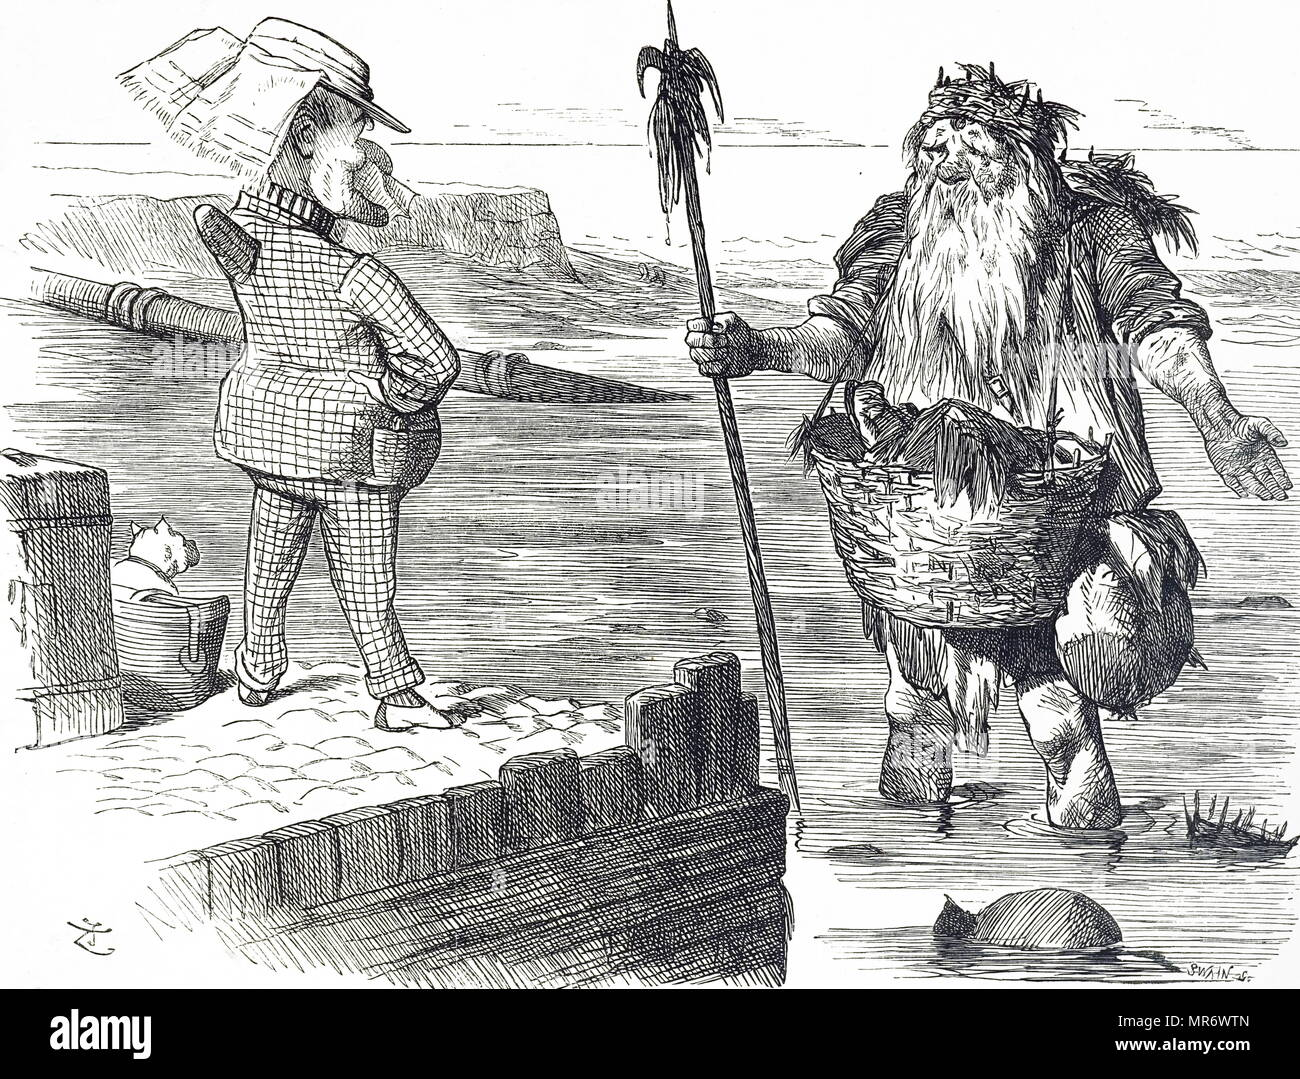 Cartoon commenting on the pollution of the Thames in London. Illustrated by John Tenniel (1820-1914) an English illustrator, graphic humourist, and political cartoonist. Dated 19th century - Stock Image